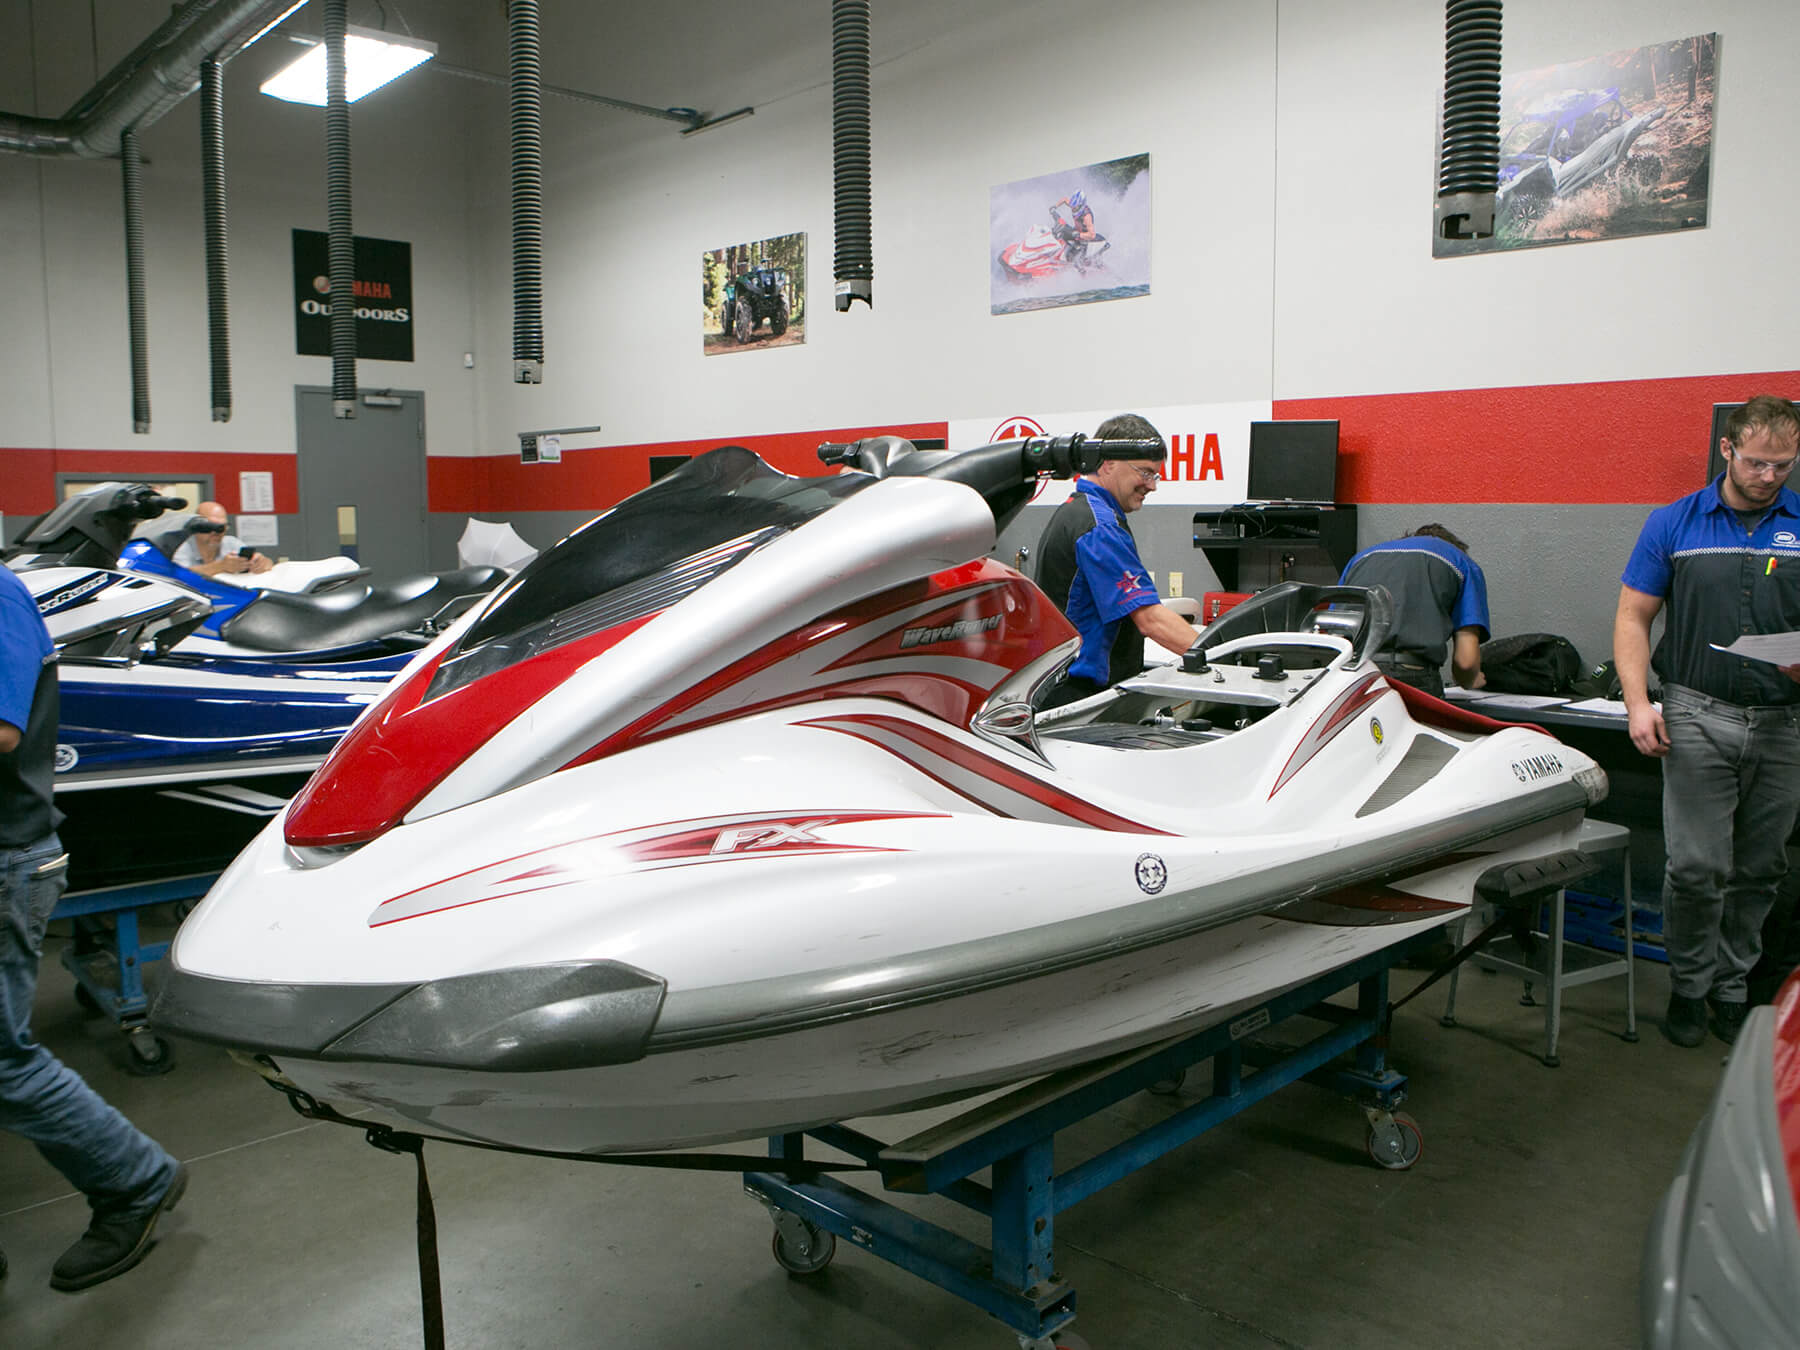 MMI students looking at a white jet ski in the Yamaha lab